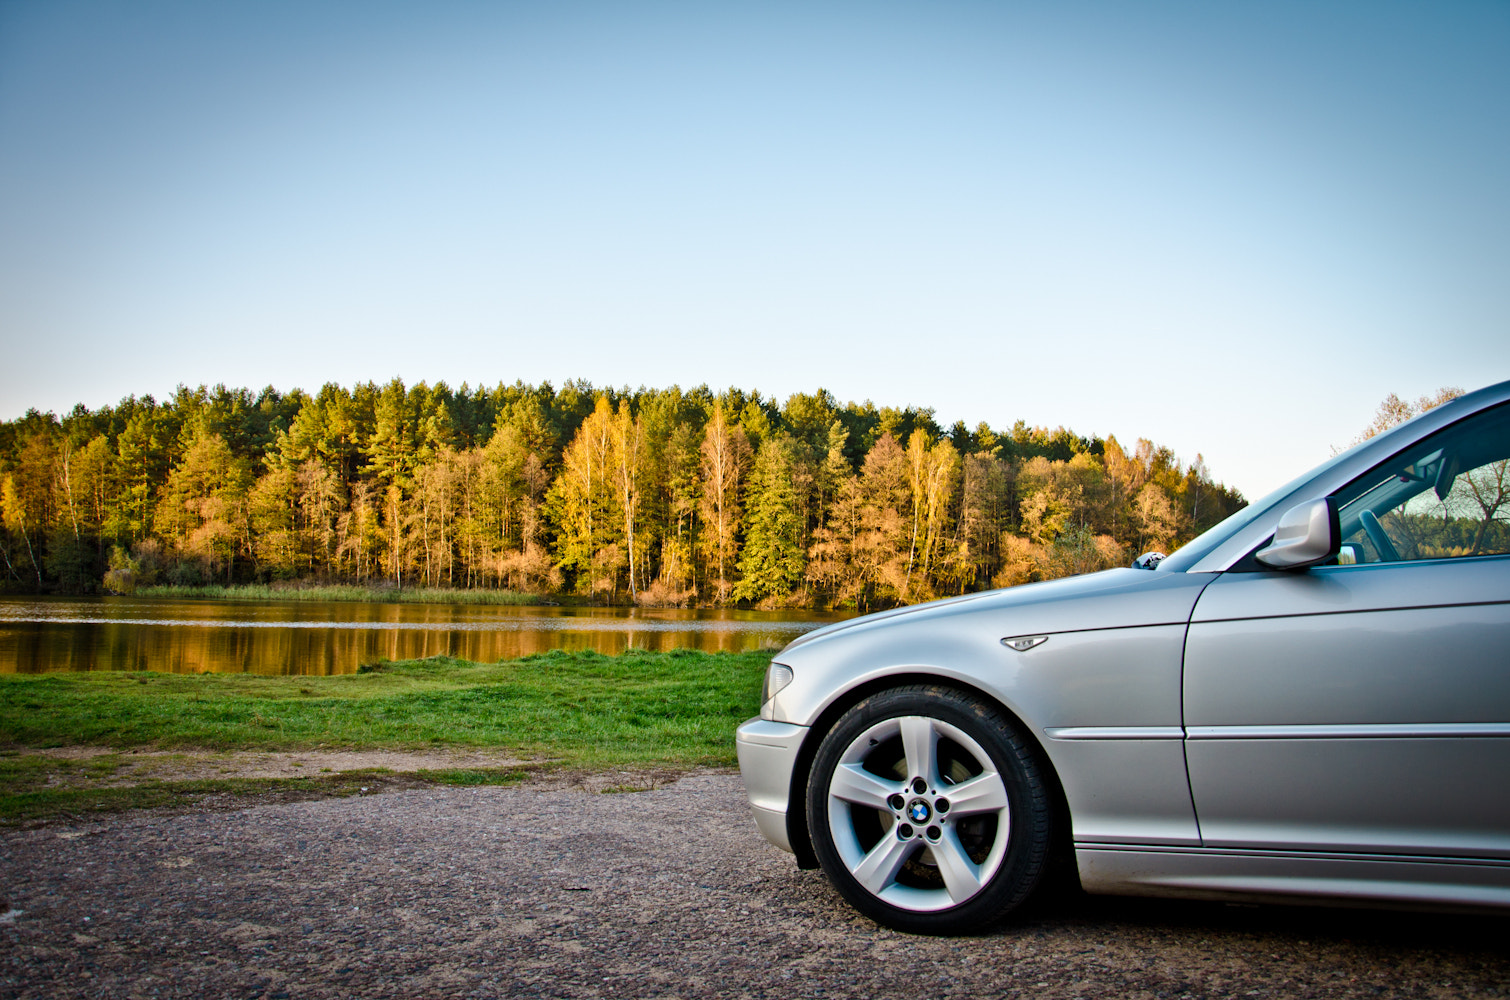 Photograph Nature&Car by Alex Ber on 500px